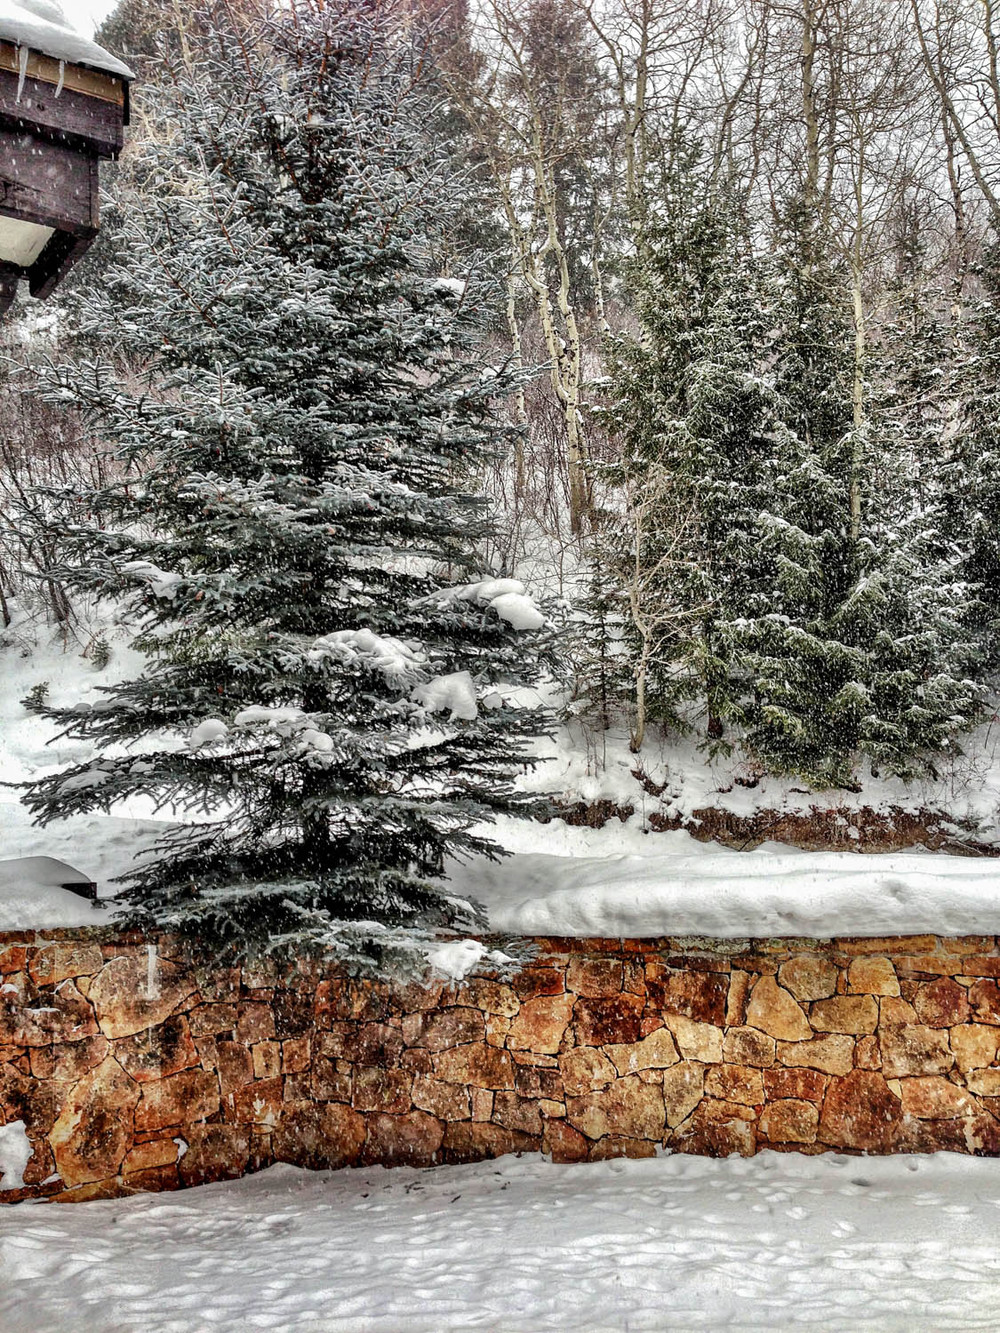 I was drawn to the texture of stone in the wall and the contrast between the trees and snow.